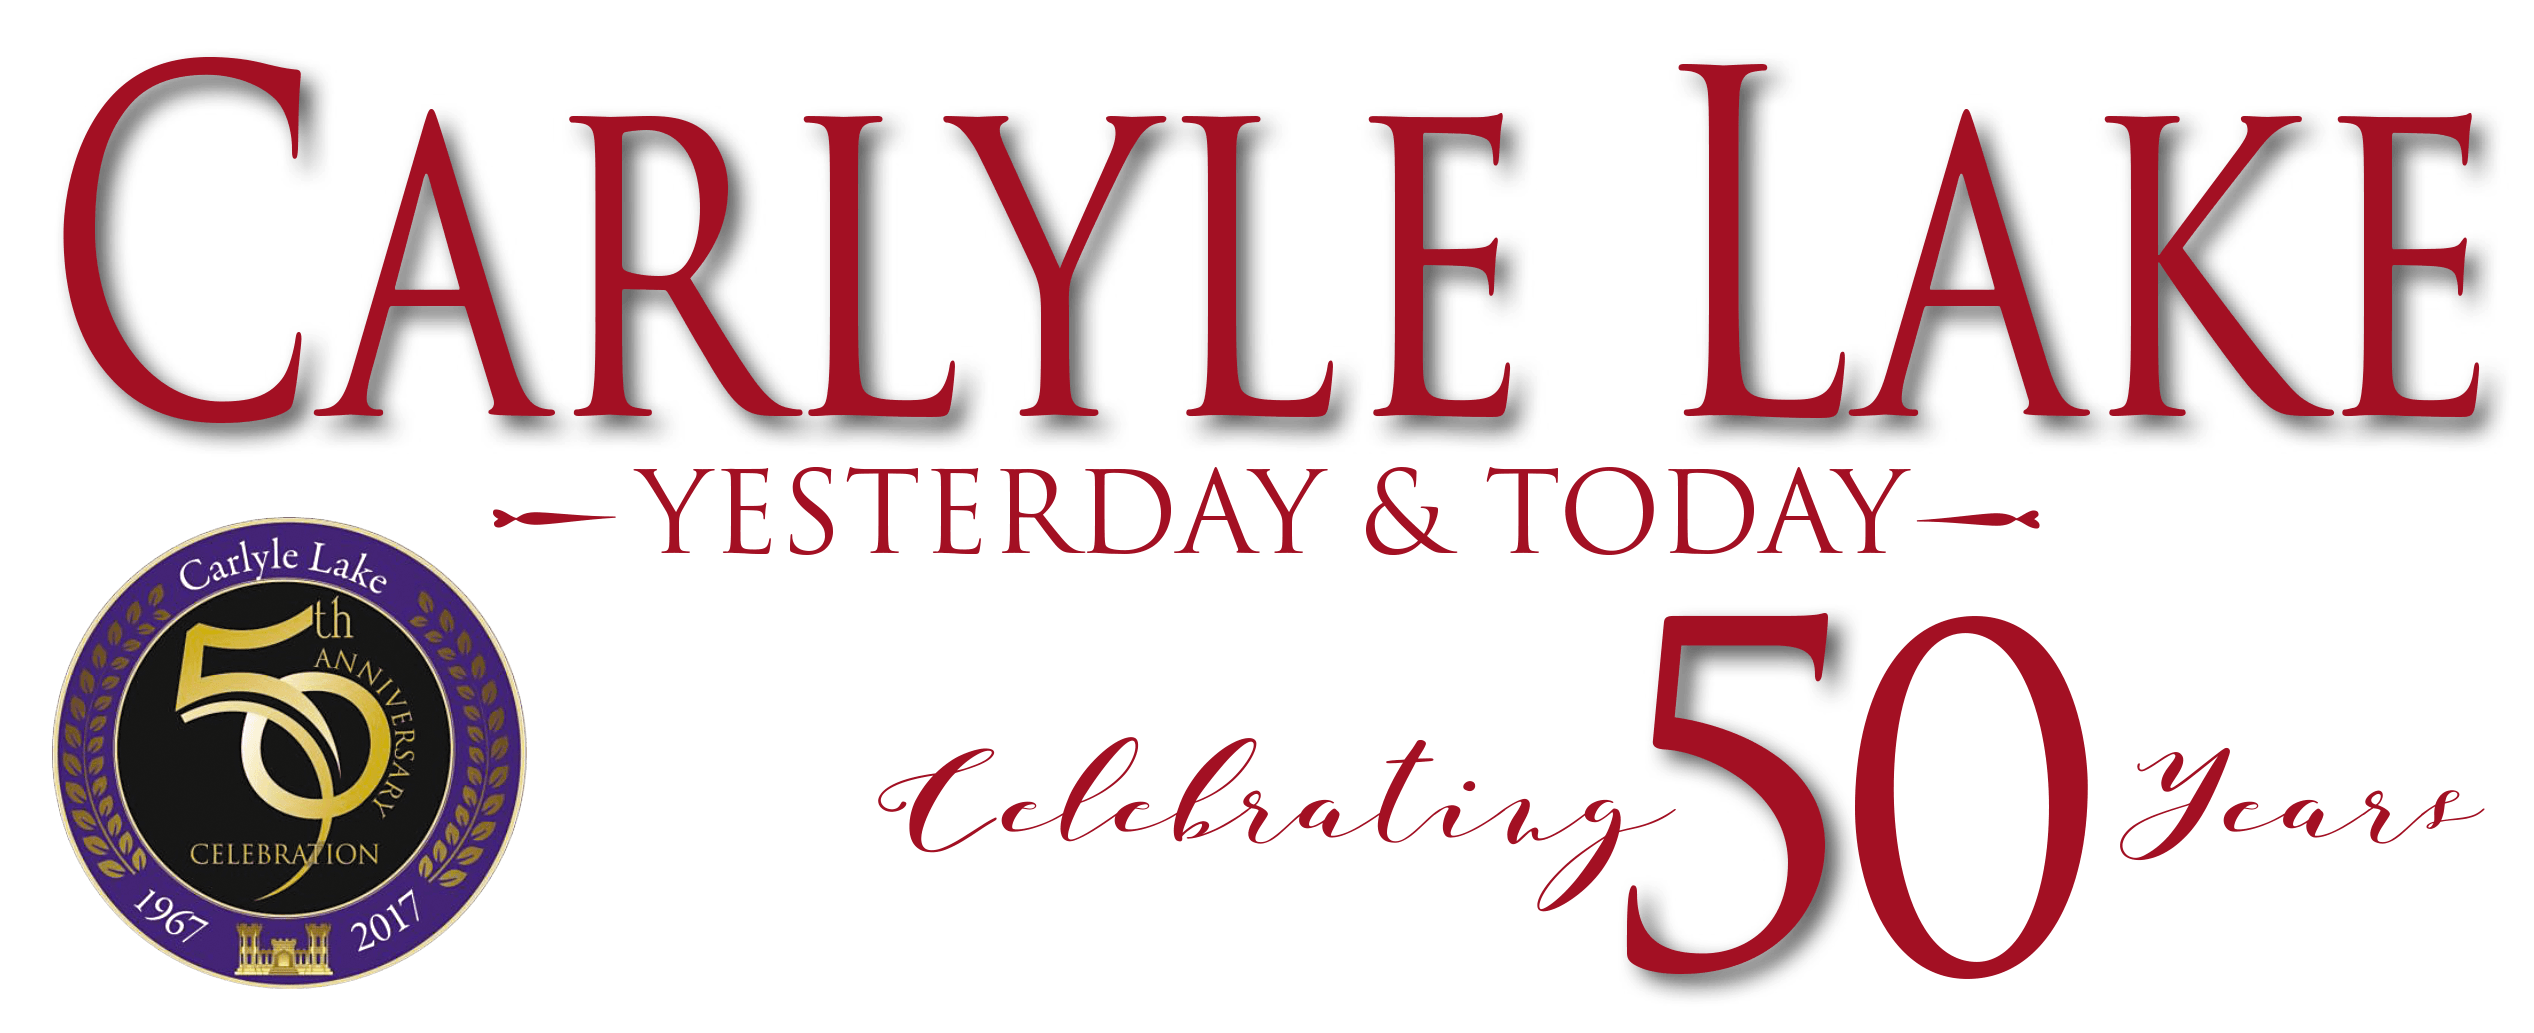 carlyle lake 50th